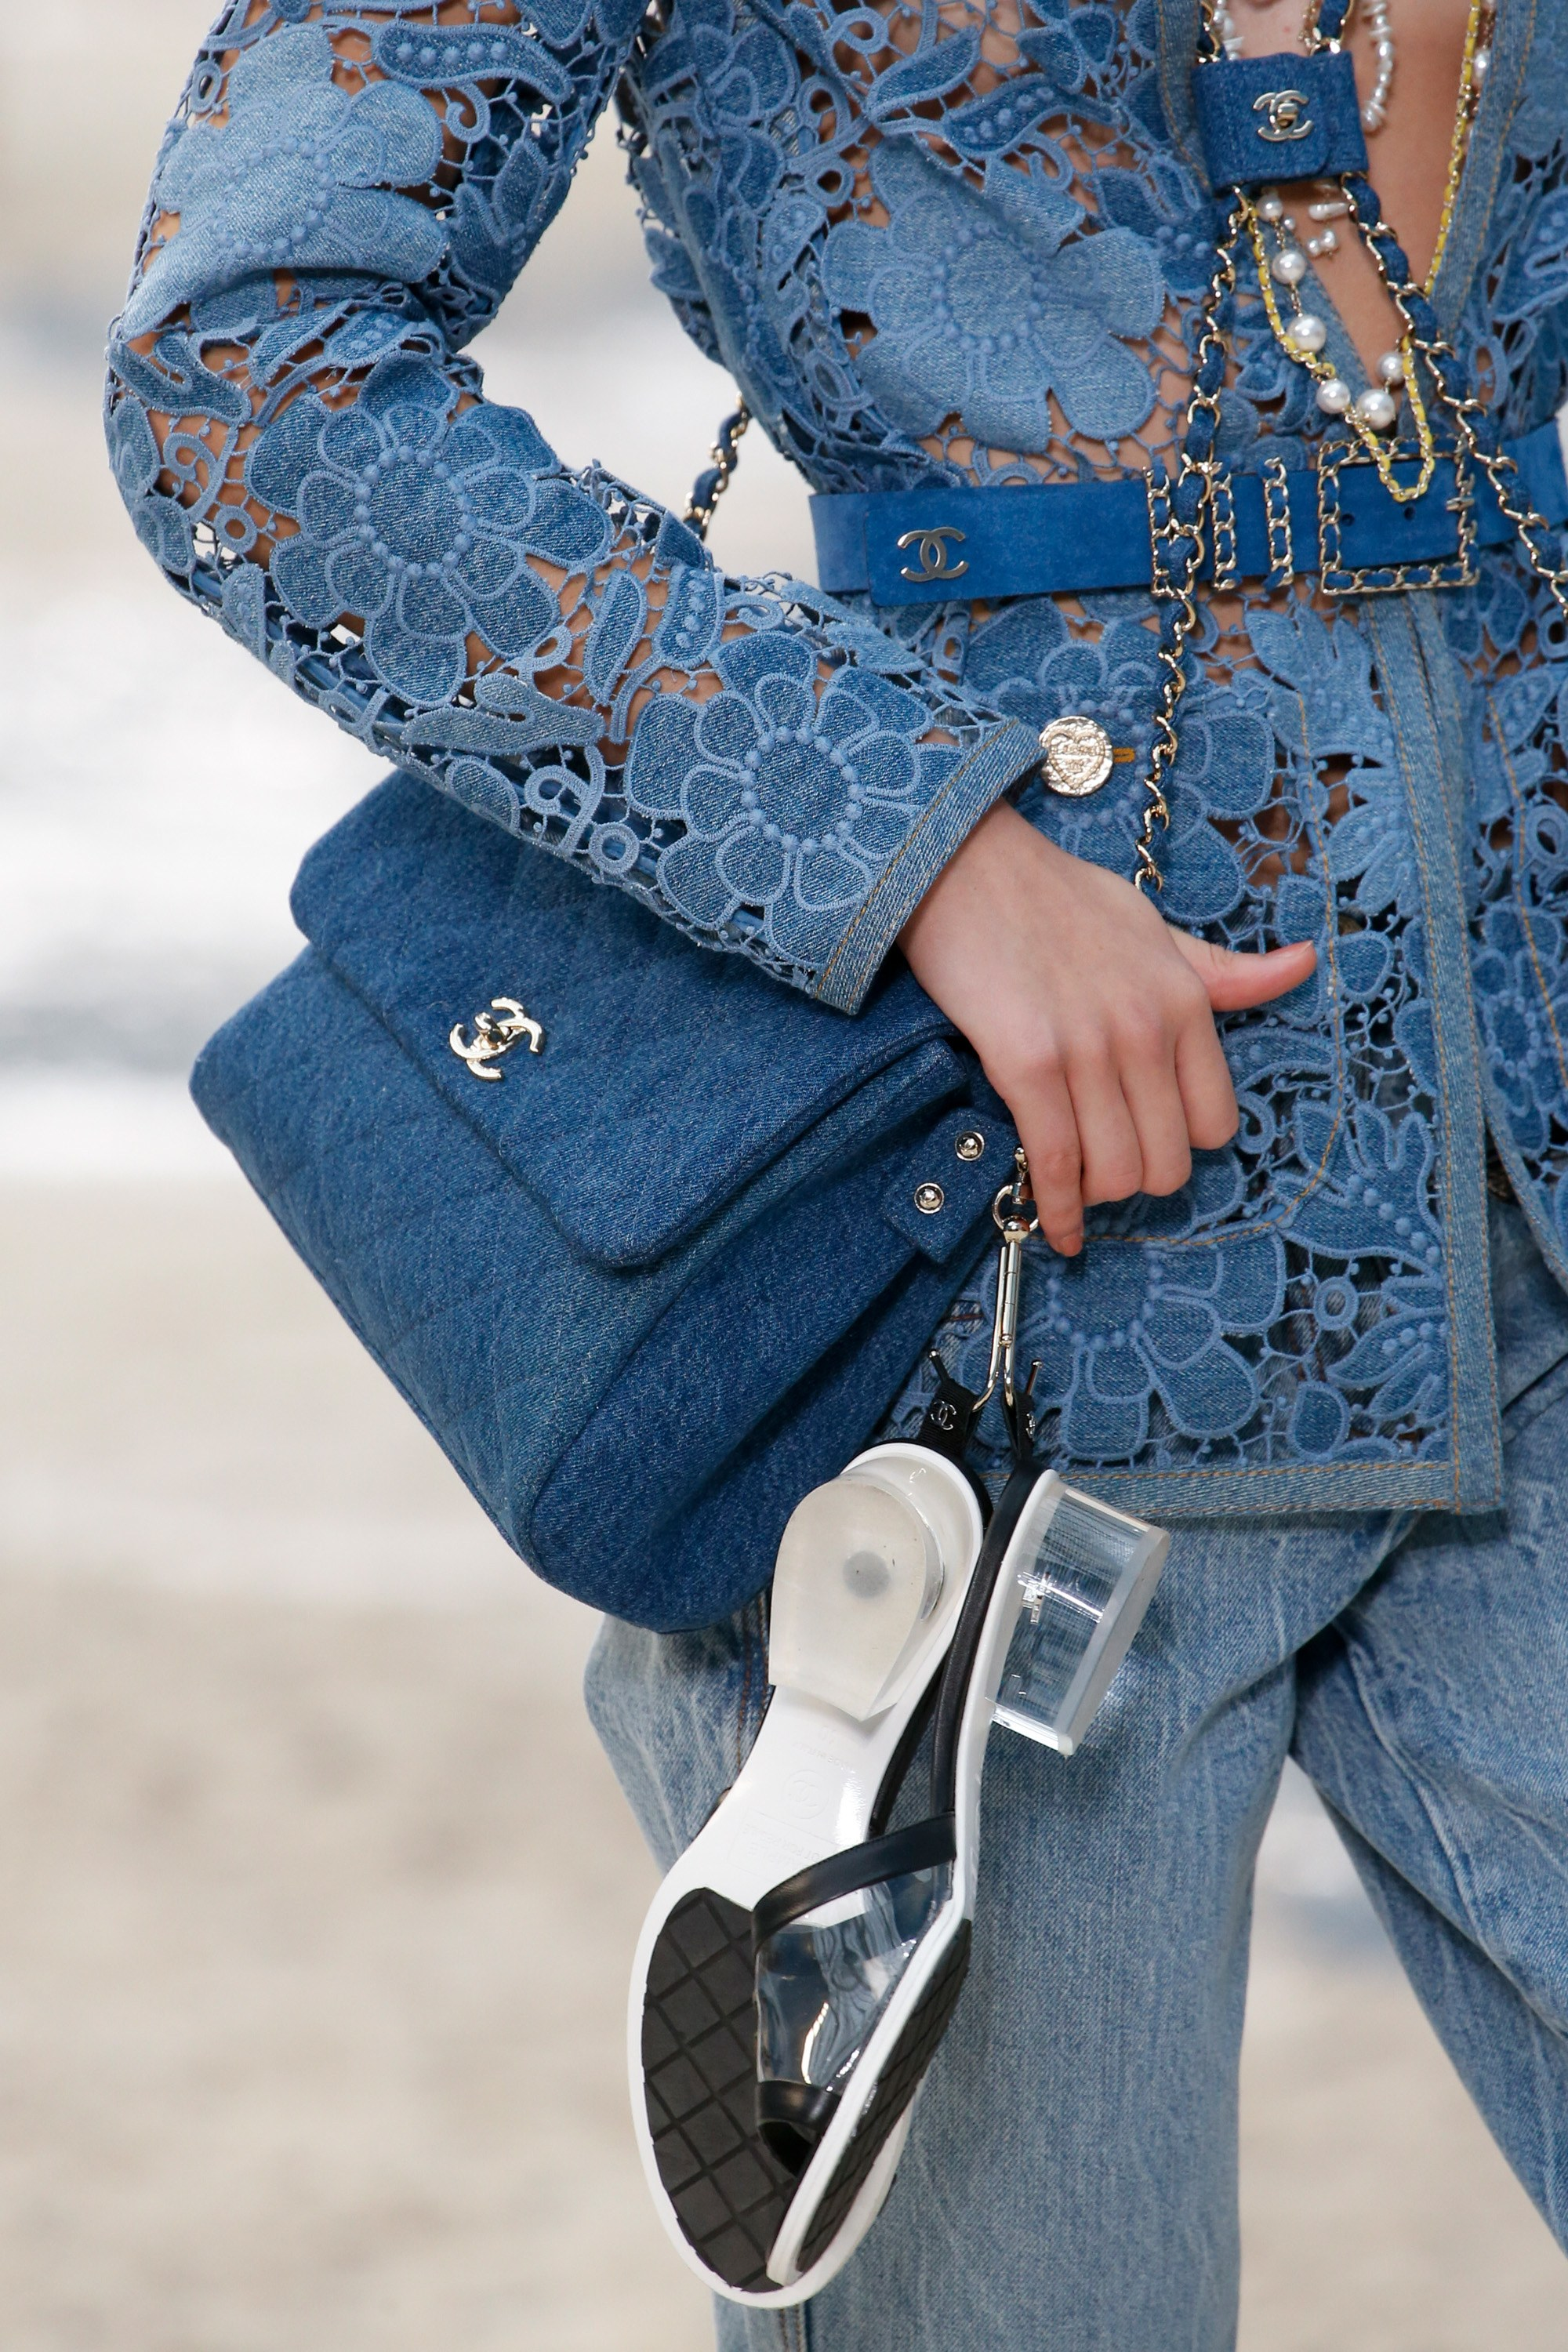 c39703ce58a0 Chanel Spring Summer 2019 Runway Bag Collection - Chanel By The Sea ...